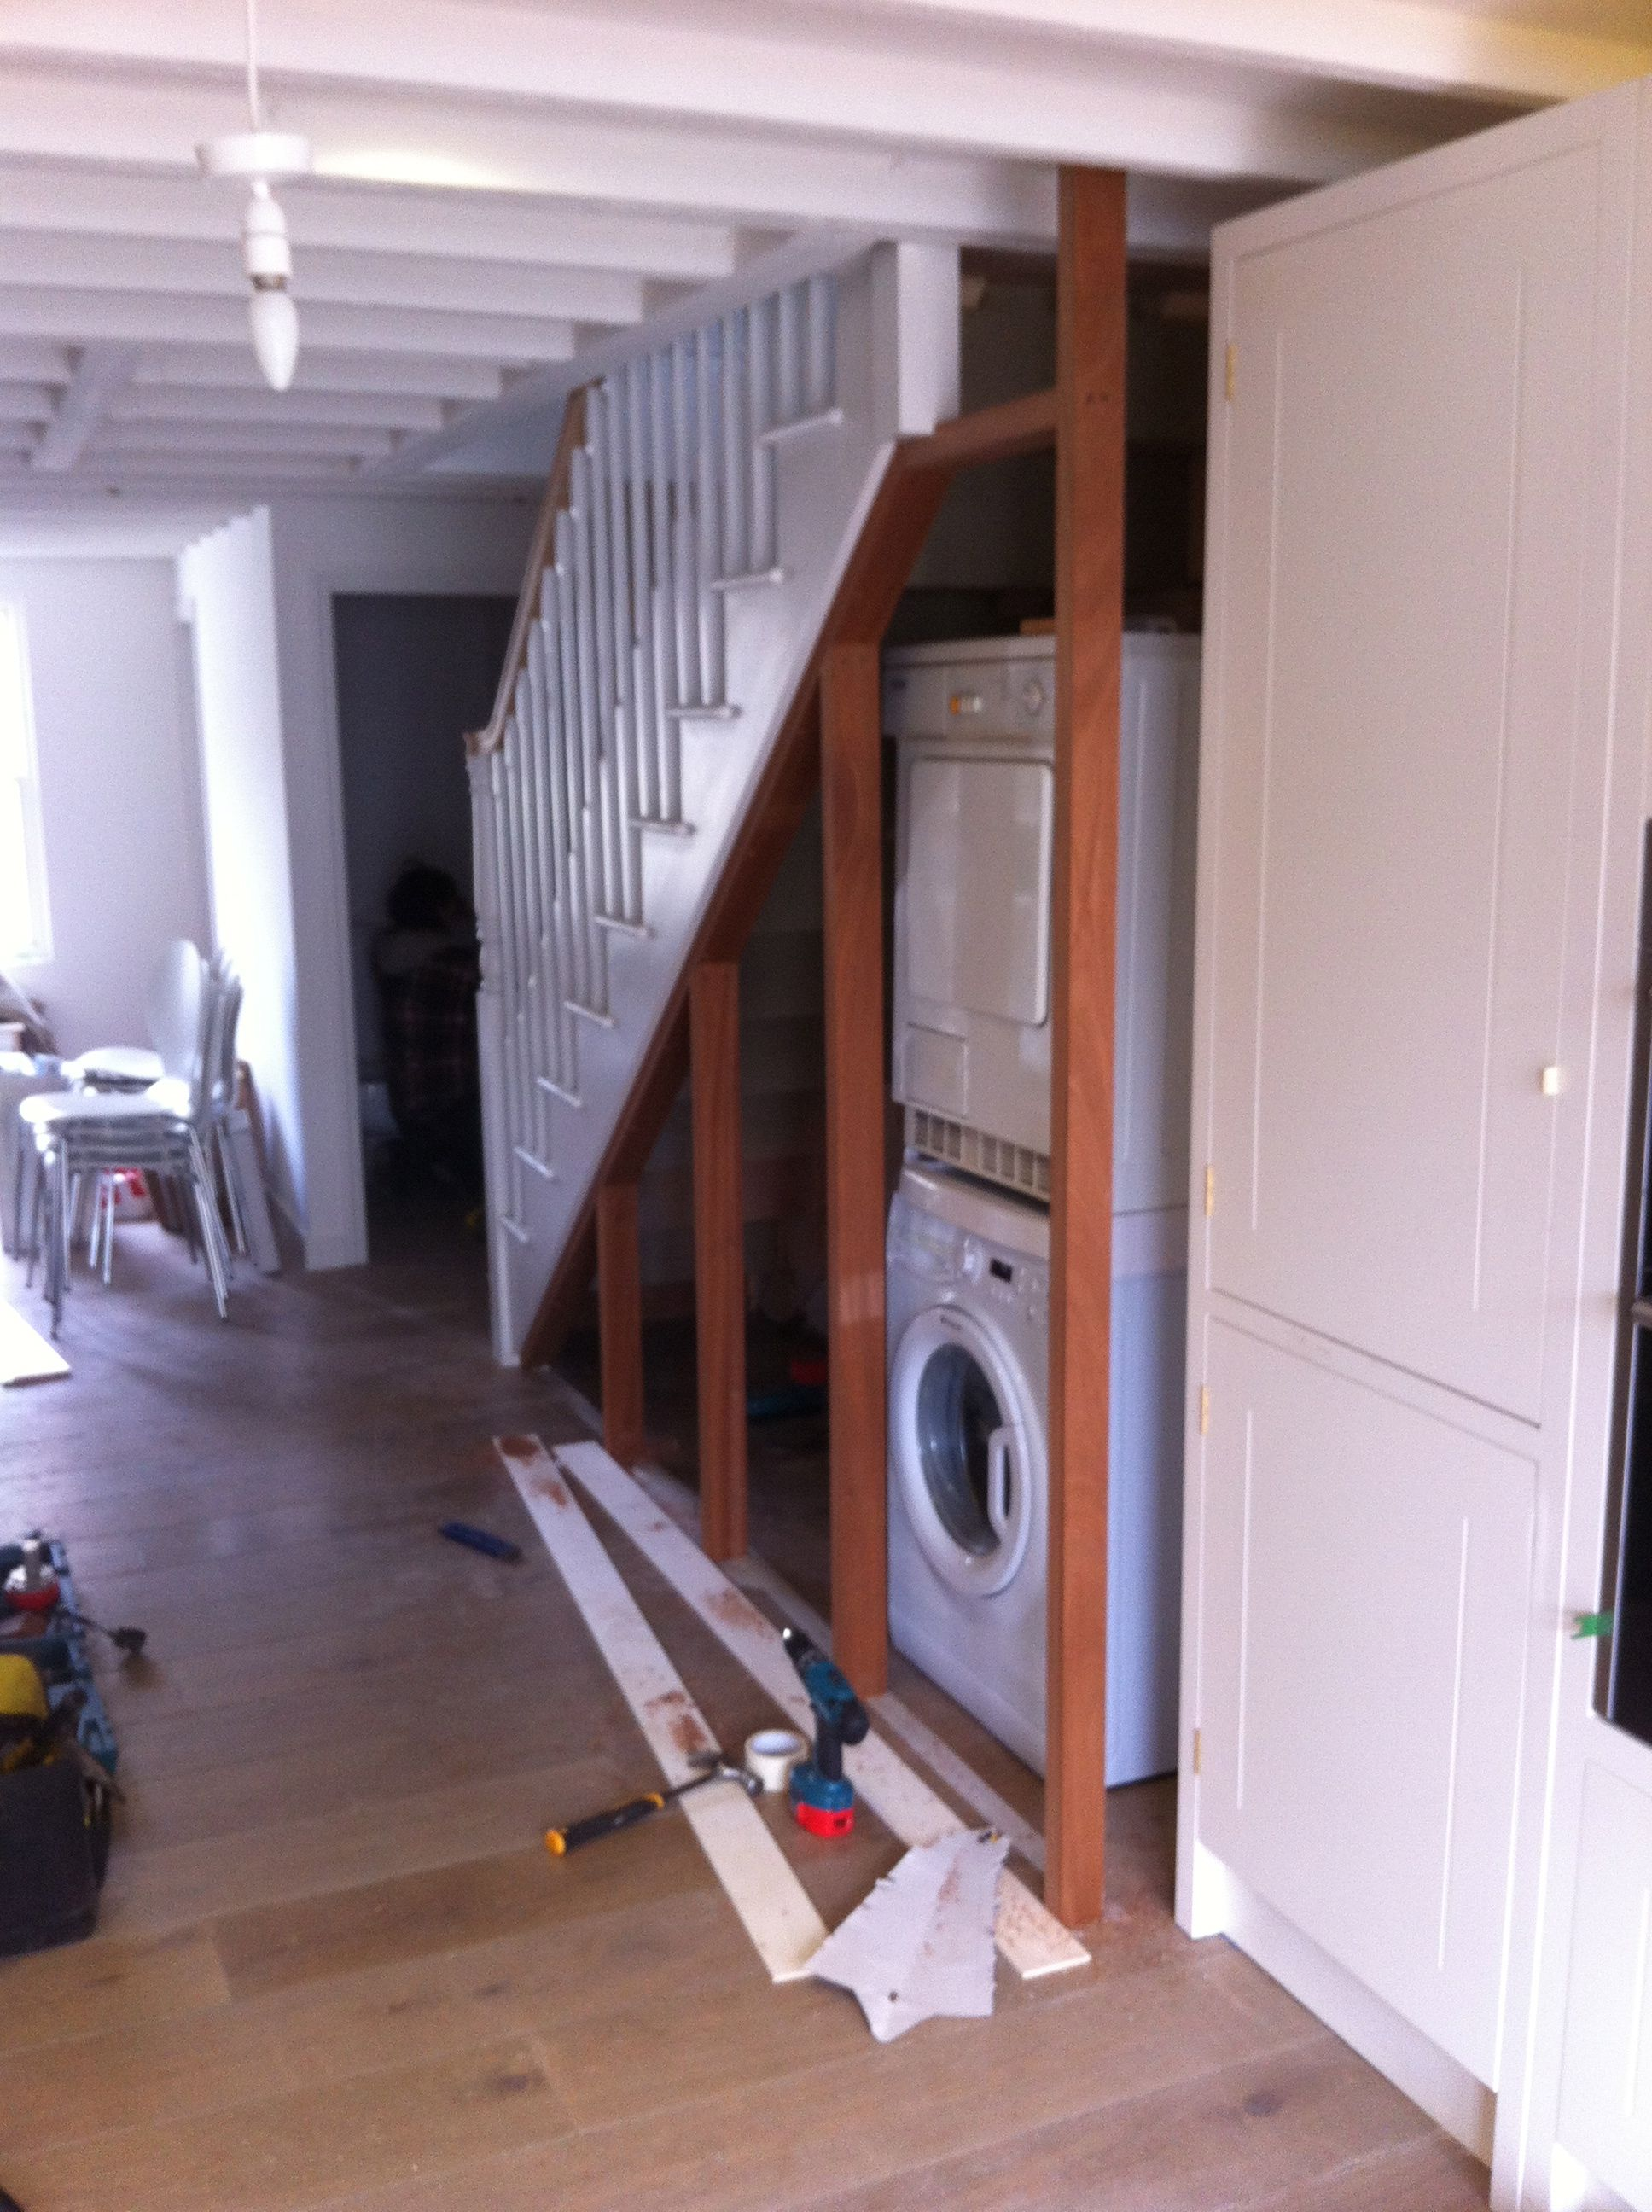 Washing Machine Under Stairs Remodeling Ideas In 2019